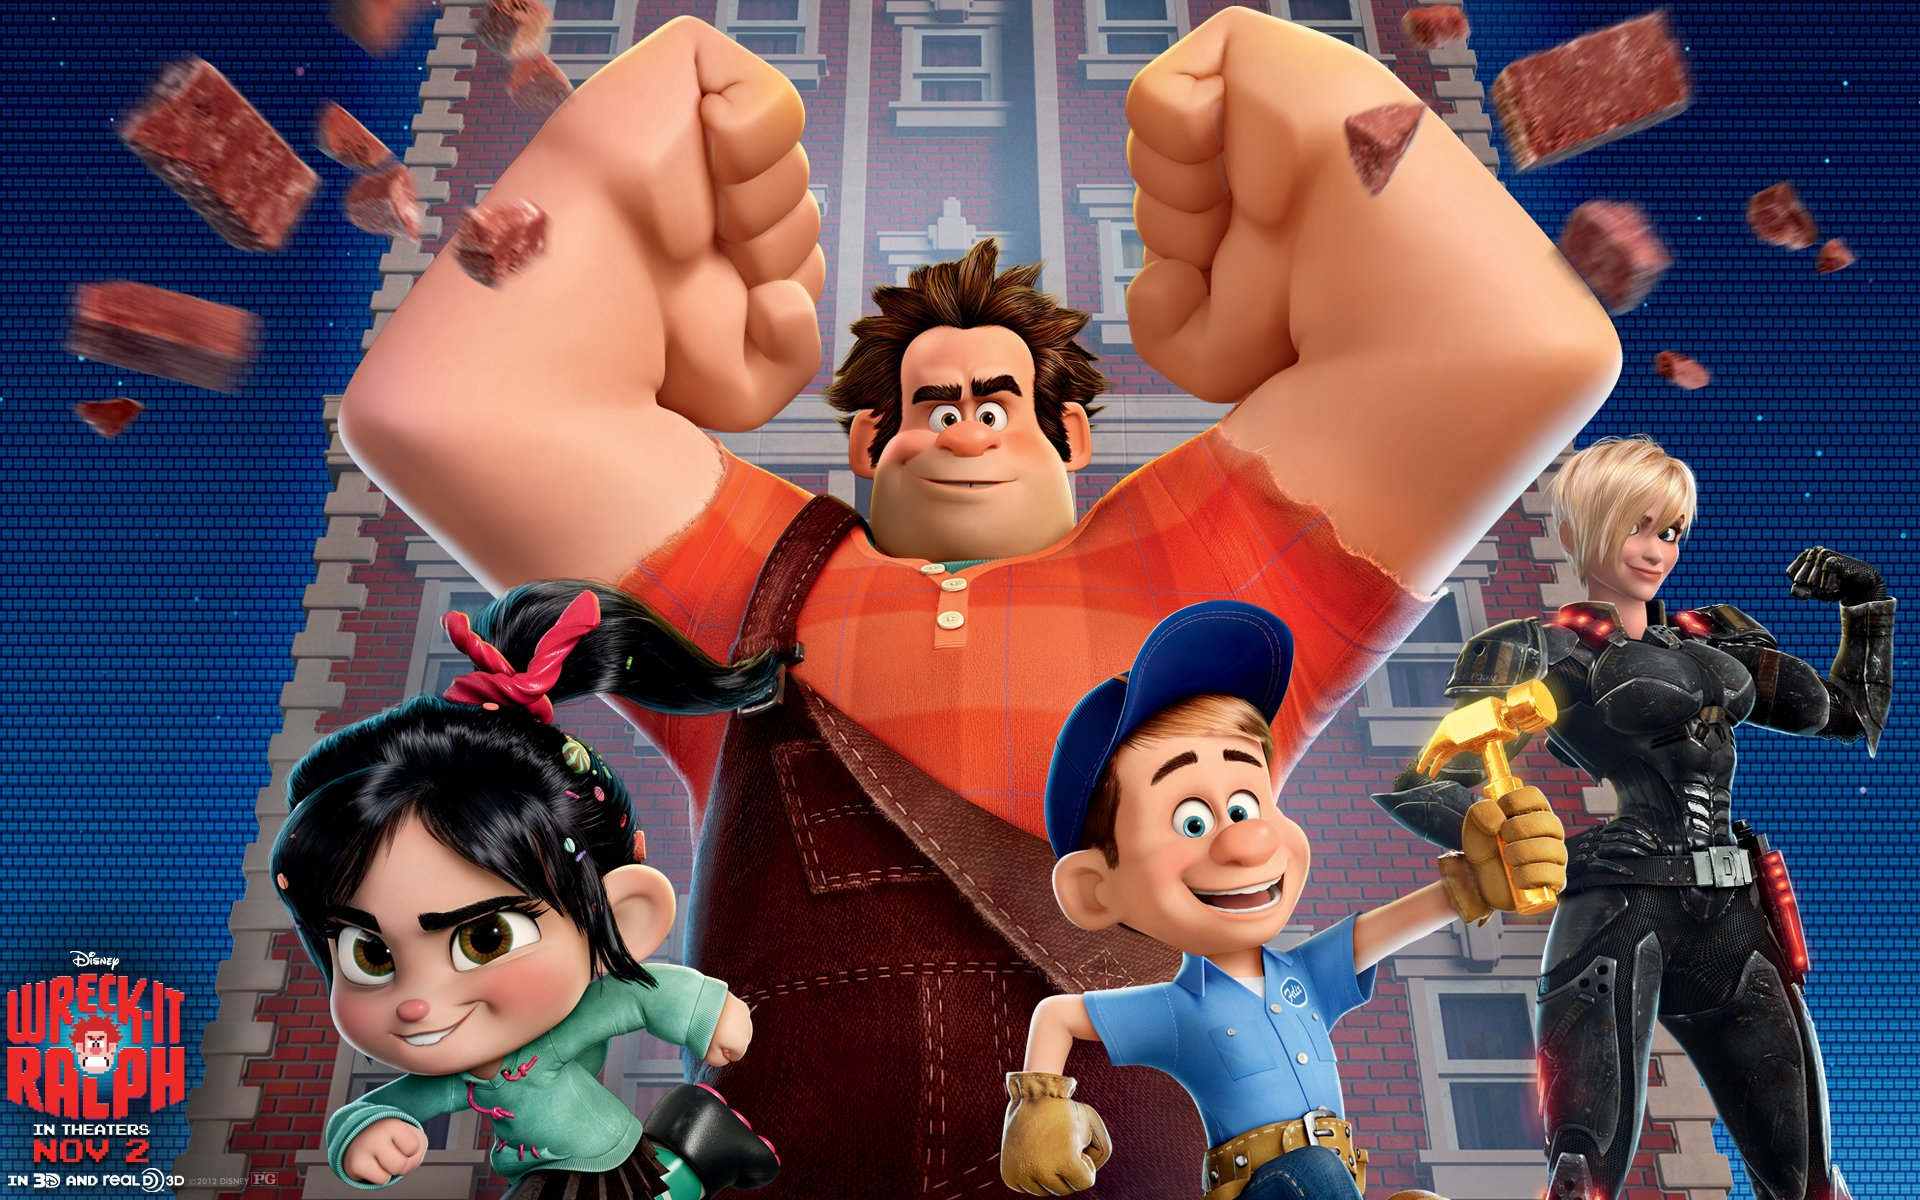 How Wreckit Ralph is secretly teaching kids to love Satan